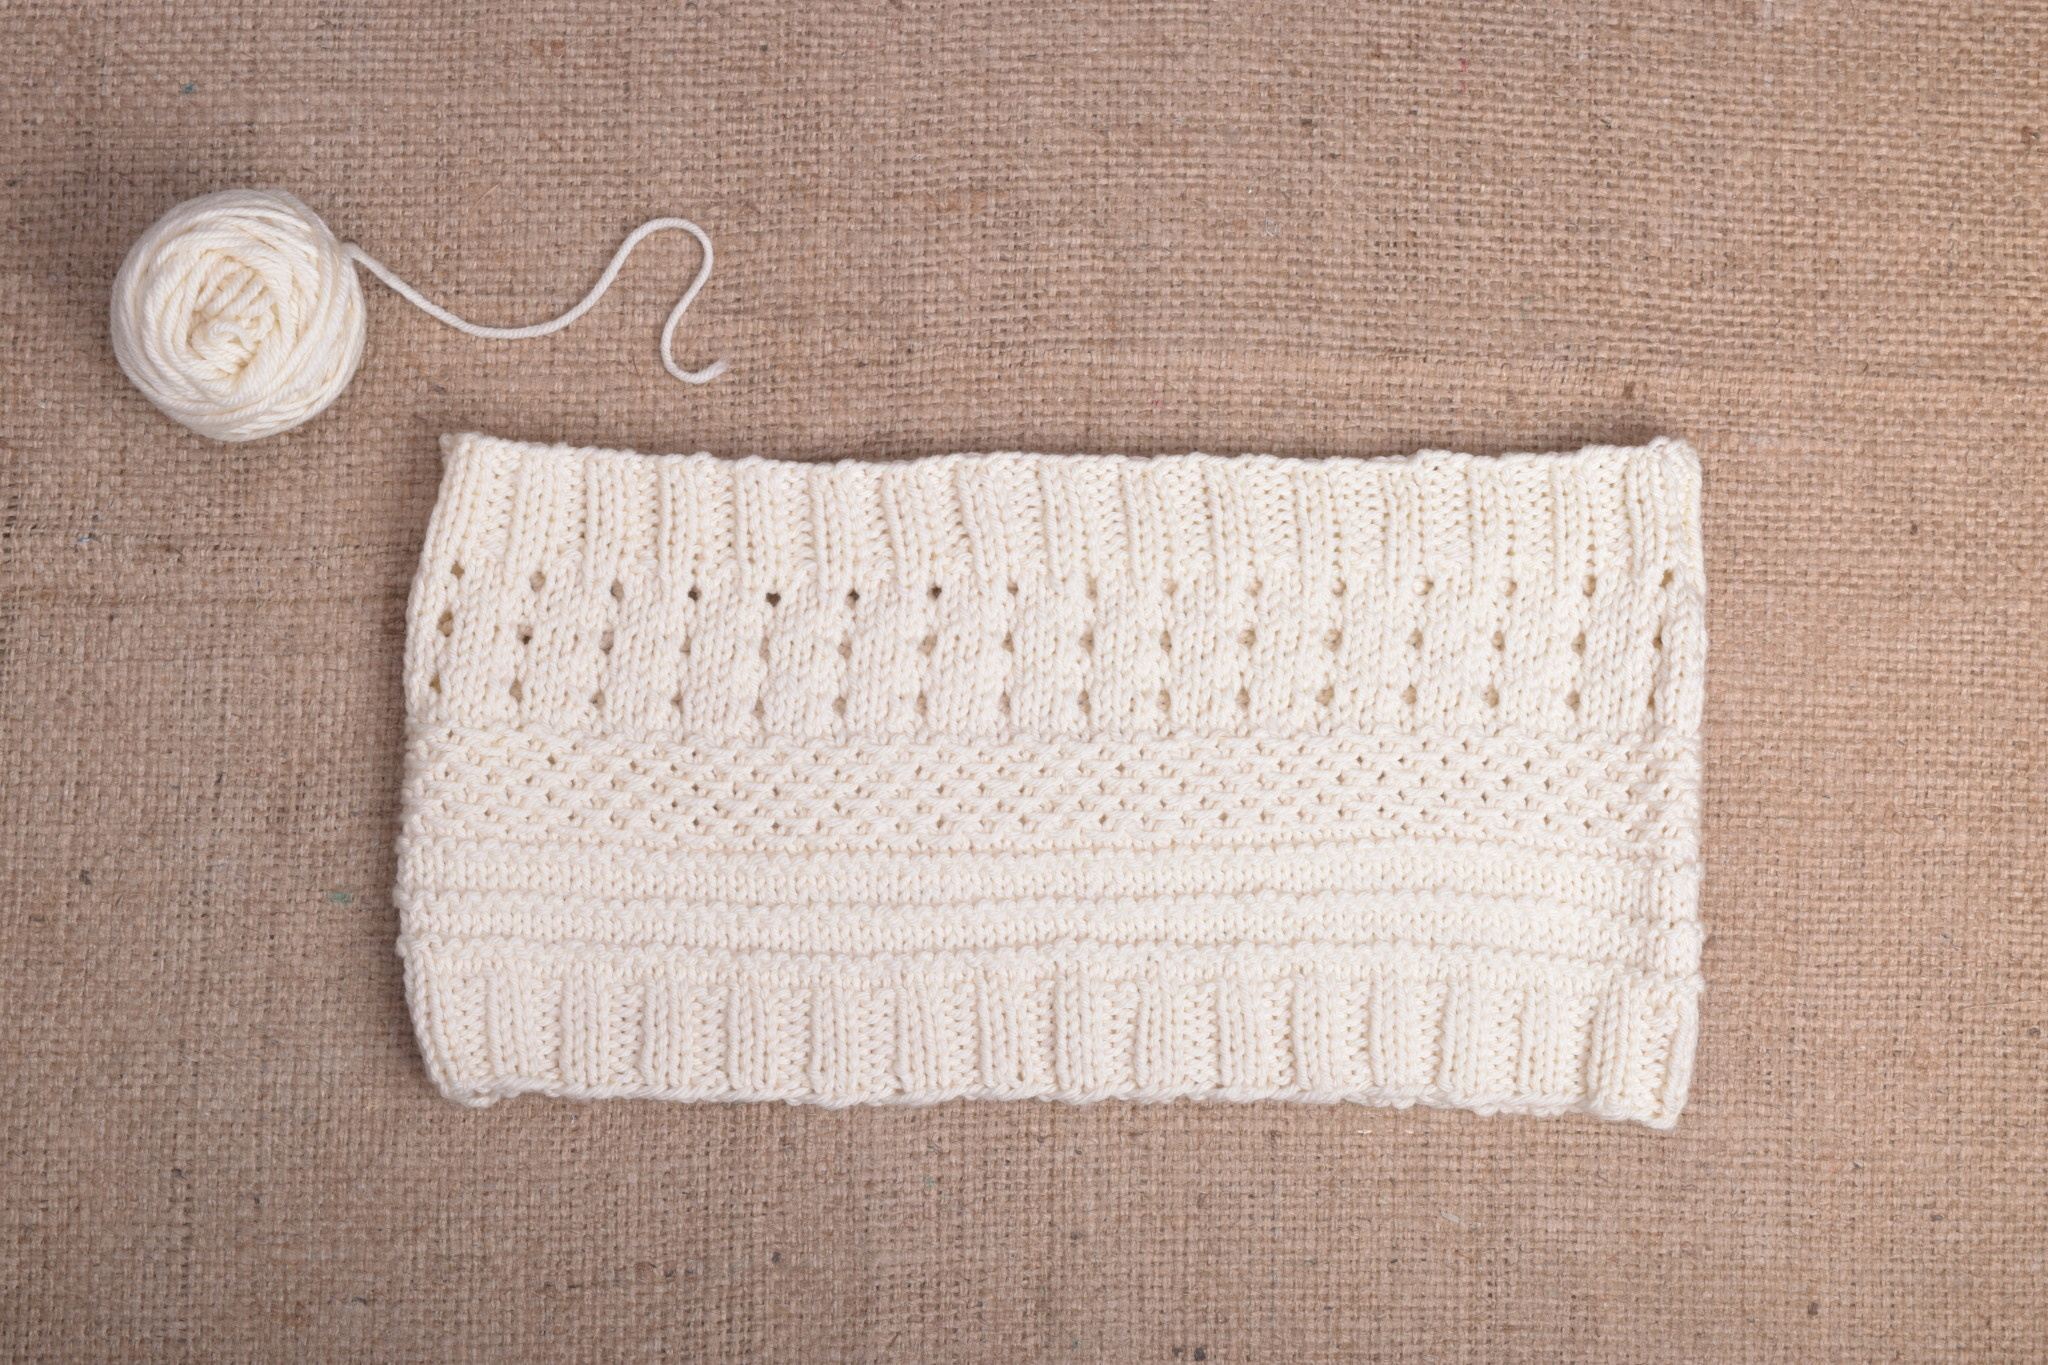 Knitting 101: Learn to Knit; Friday, May 3, 10, 17, 24;  3:00-5:00PM